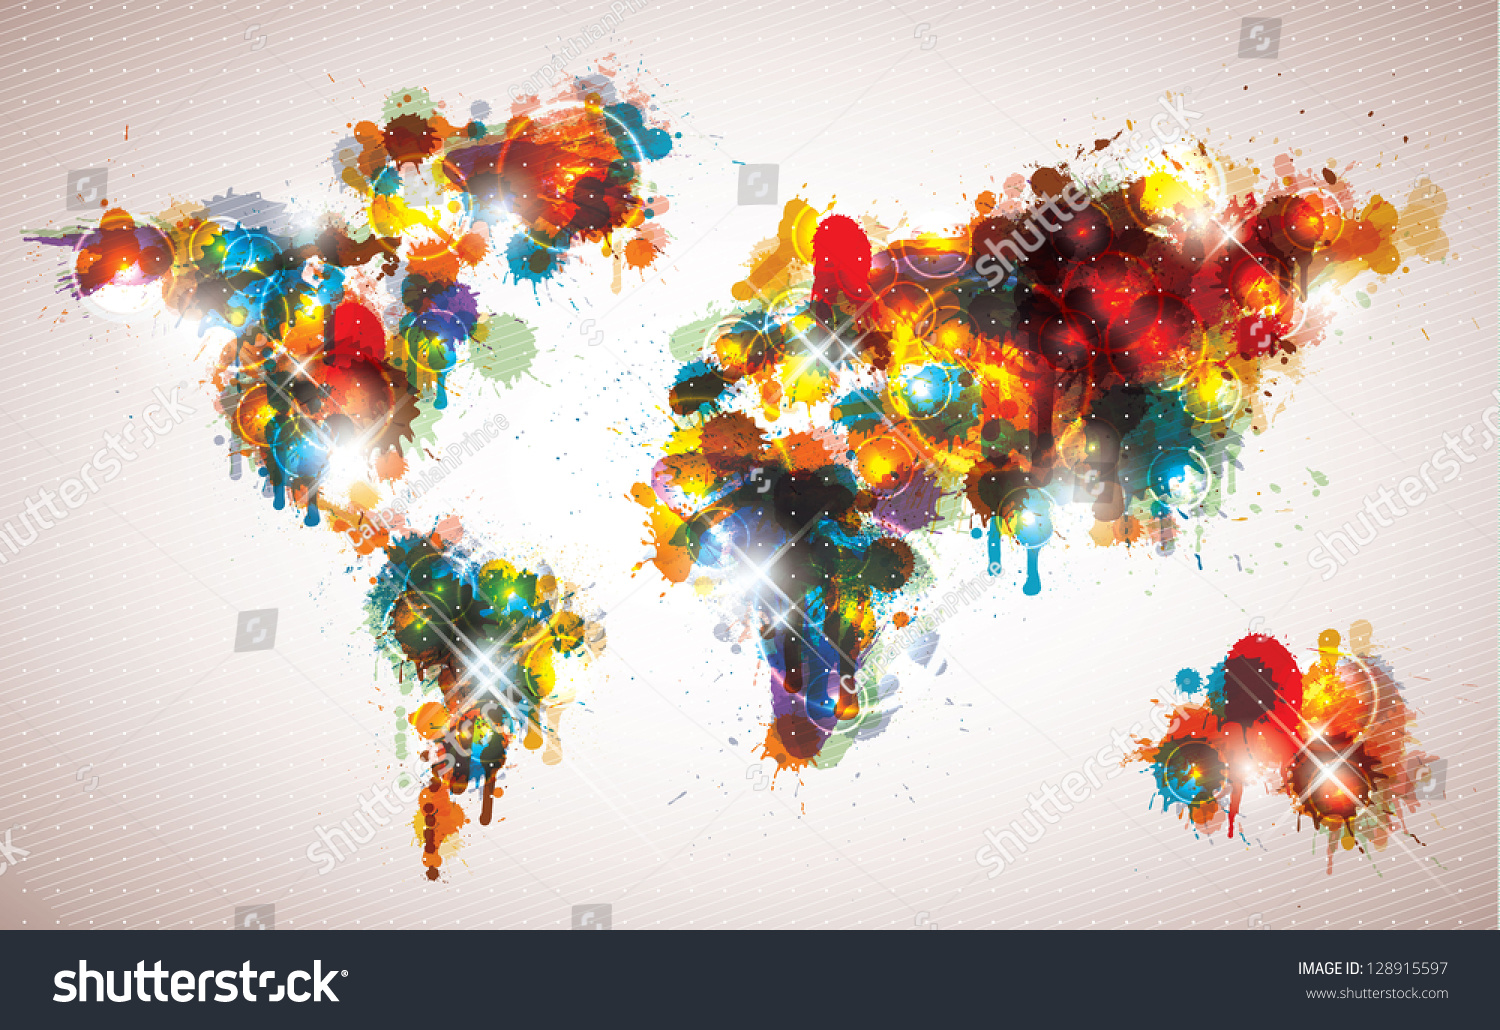 Cool World Map Cover Photo Images Galleries With A Bite